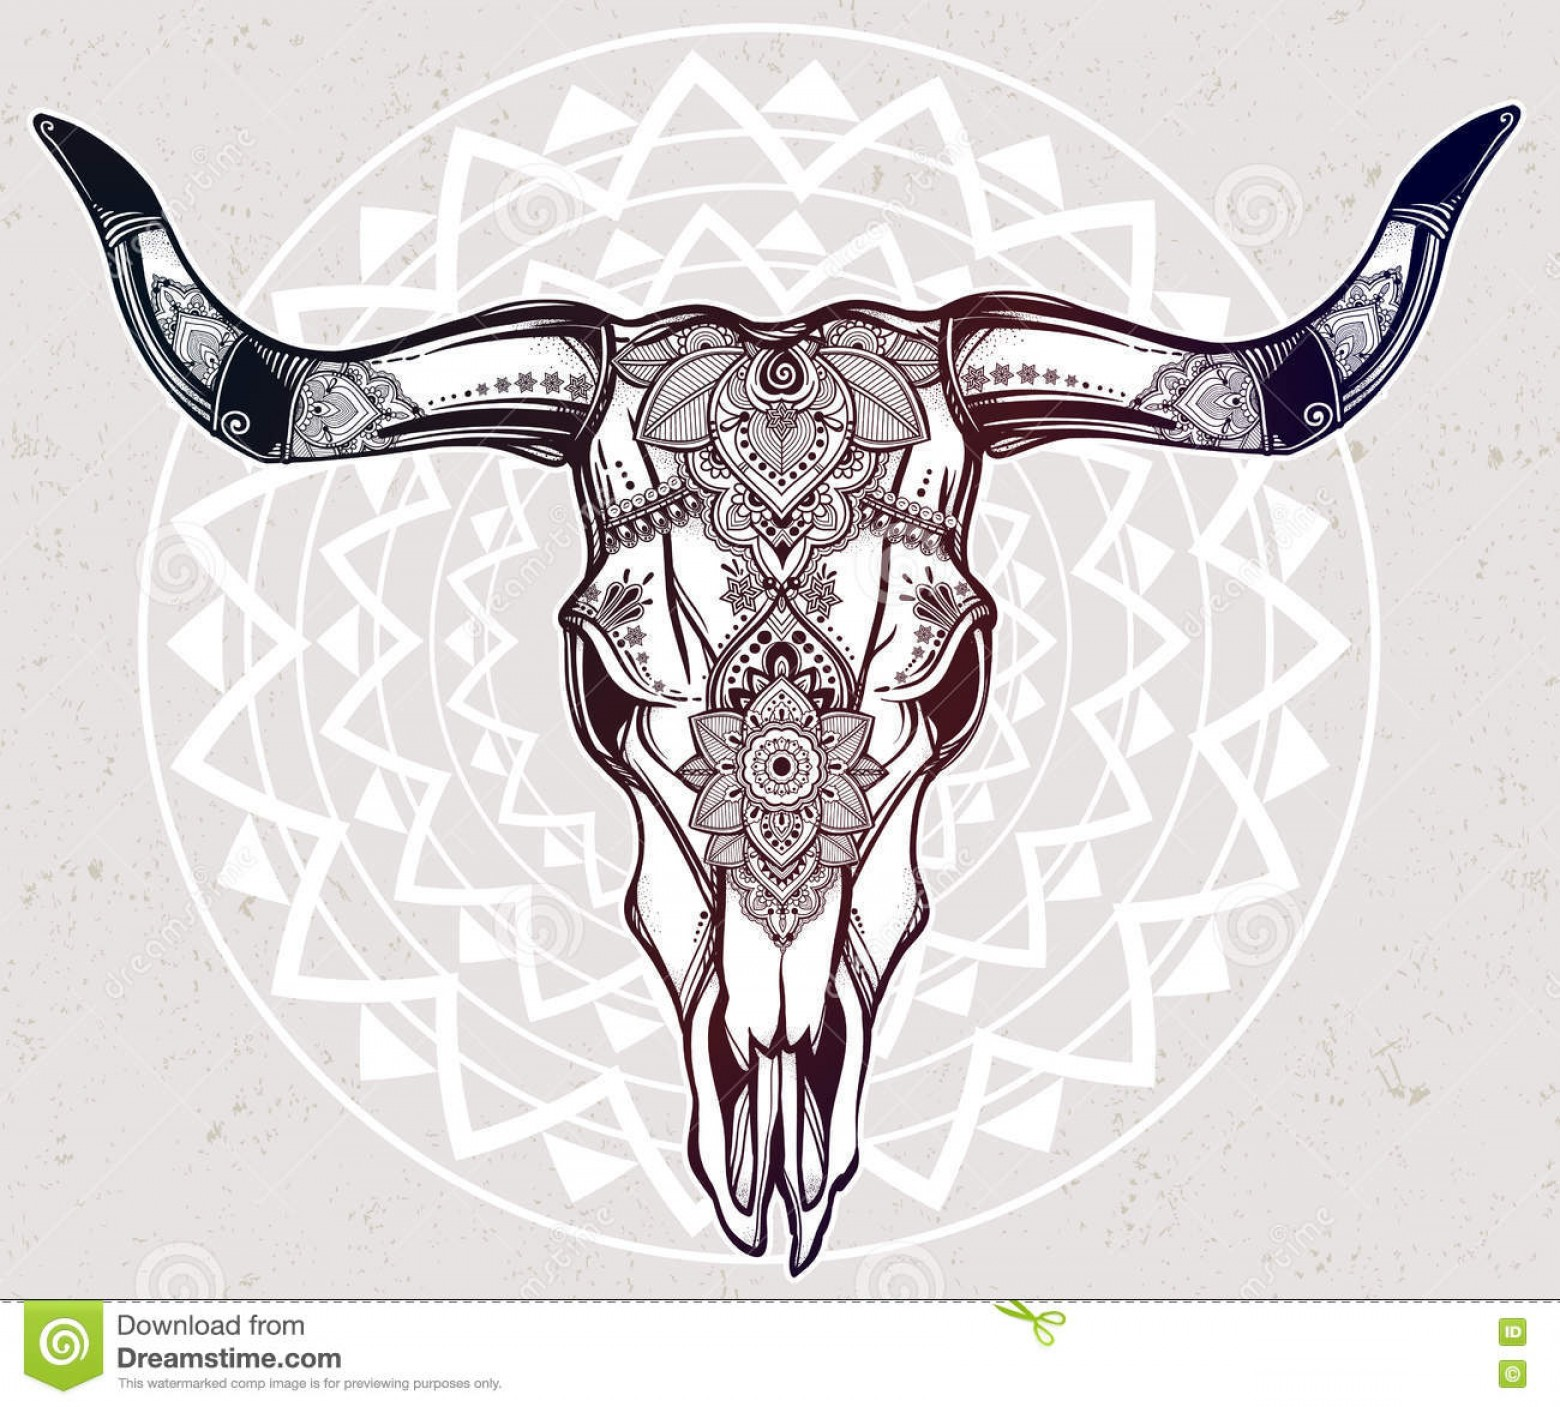 Longhorn Skull Vector: Indian Bull Skull Tattoo Hand Drawn Romantic Style Ornate Cow Skull Stock Vector Image